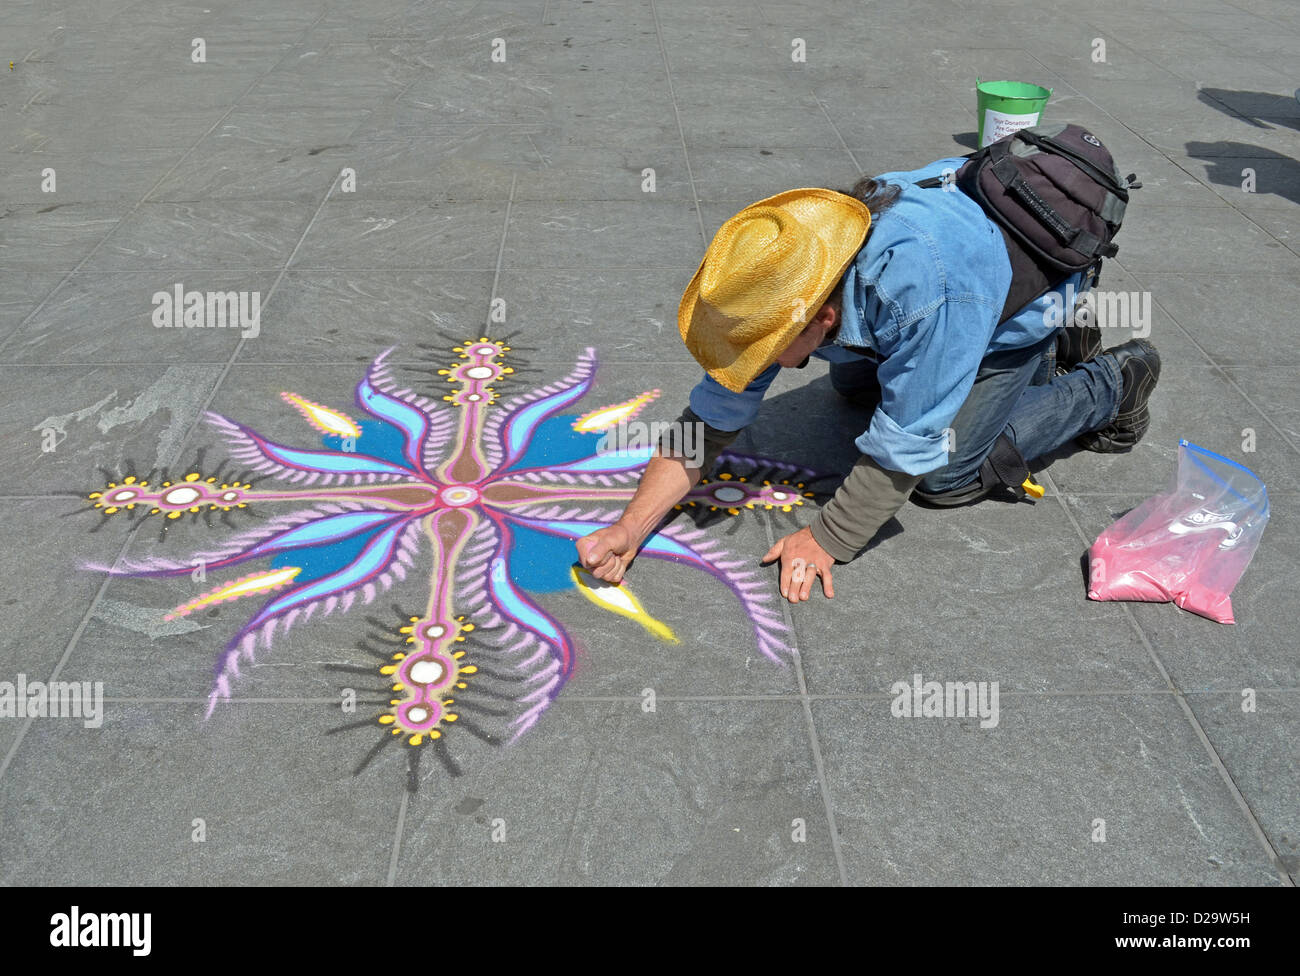 April 2012 Joe Mangrum painting with sand in Washington Square Park in Greenwich Village, NYC - Stock Image